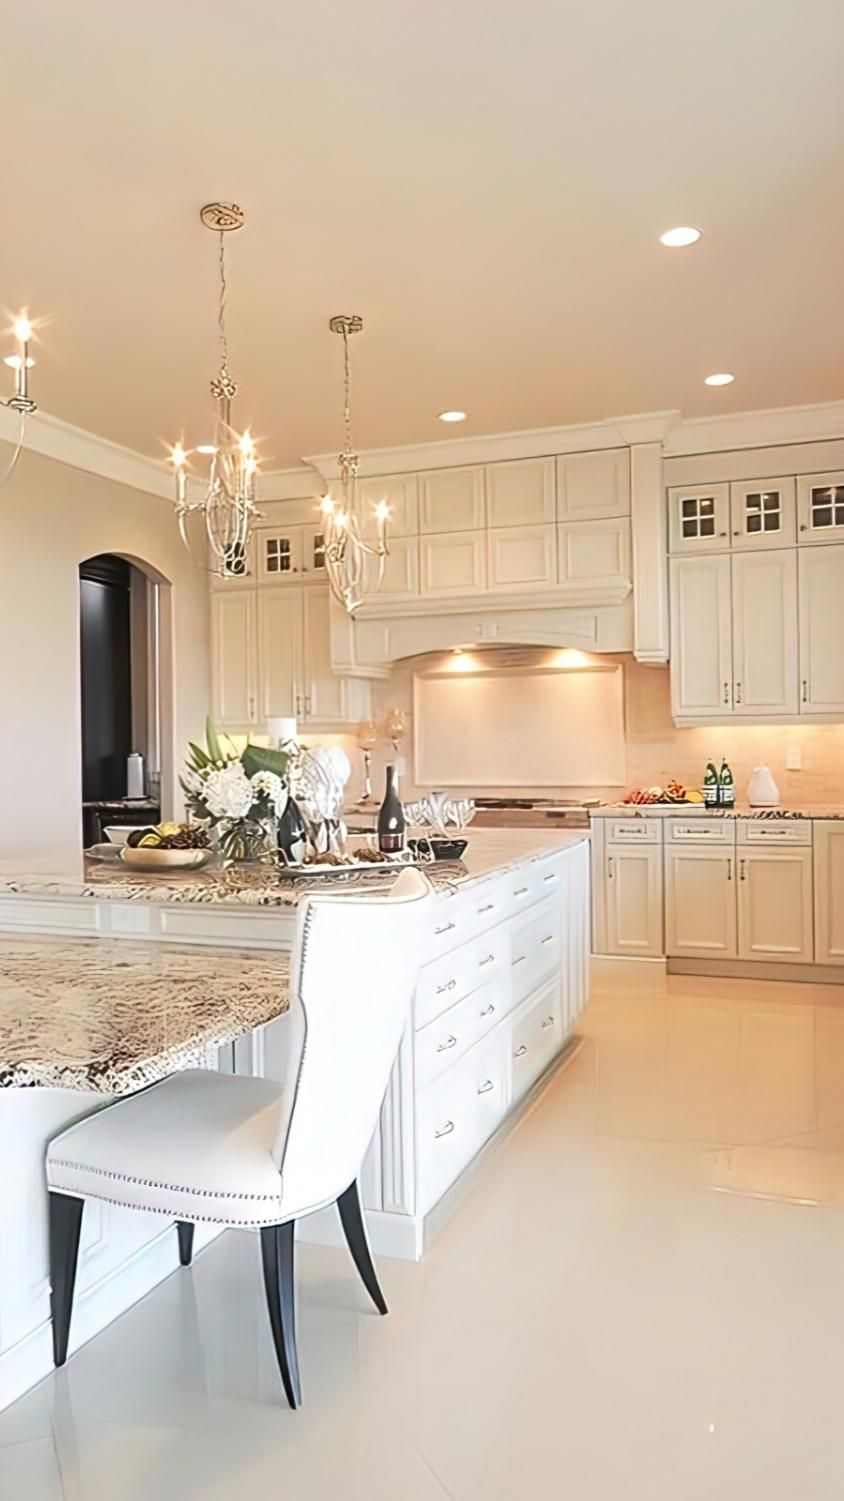 Kitchen with cooking / spices? Yes, please! I'm obsessed !! This is my dream kitchen